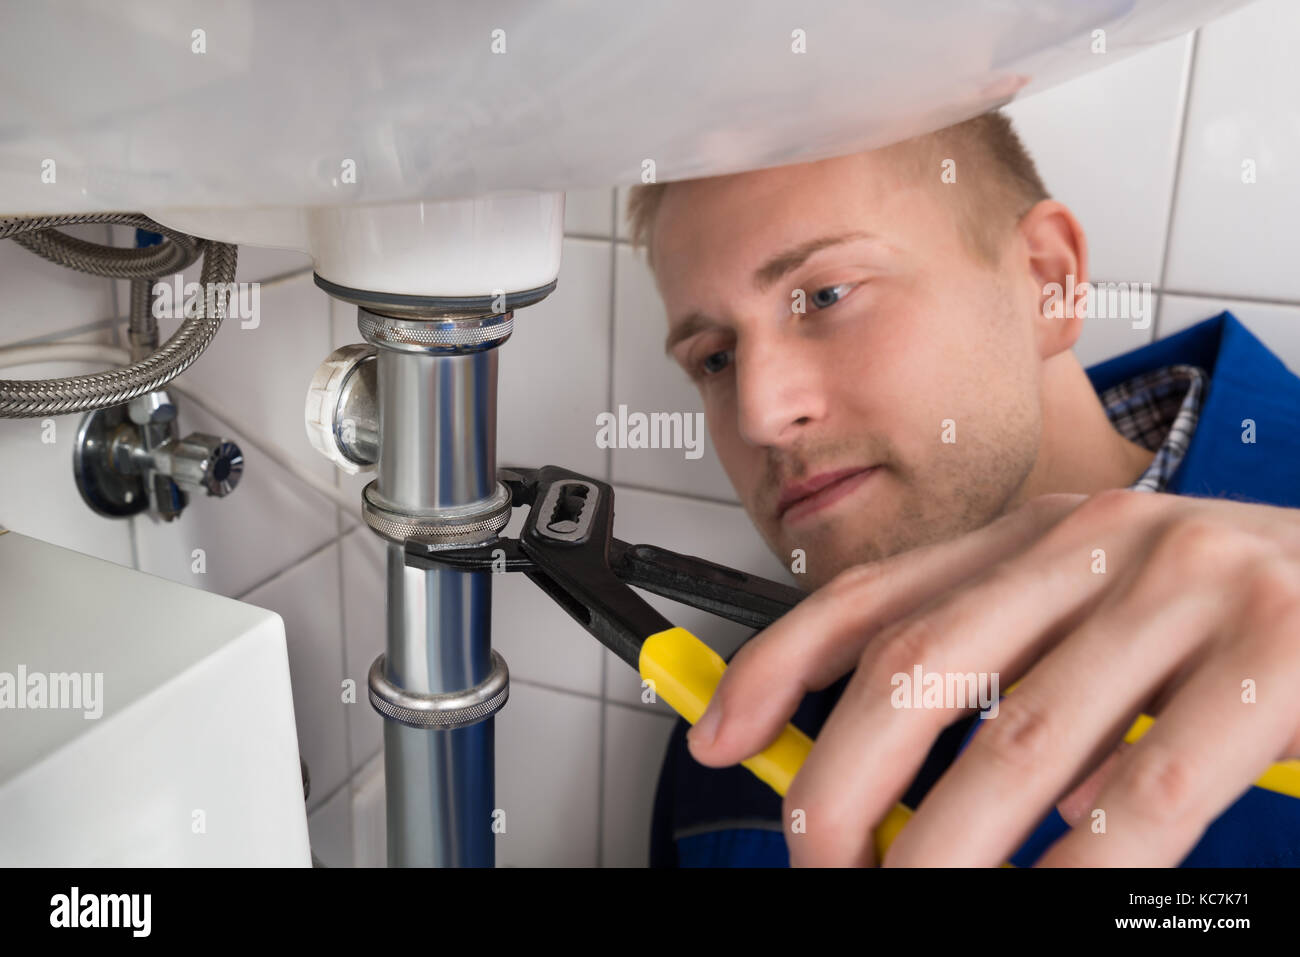 Close-up Of Young Male Plumber Fixing Sink In Kitchen Stock Photo ...